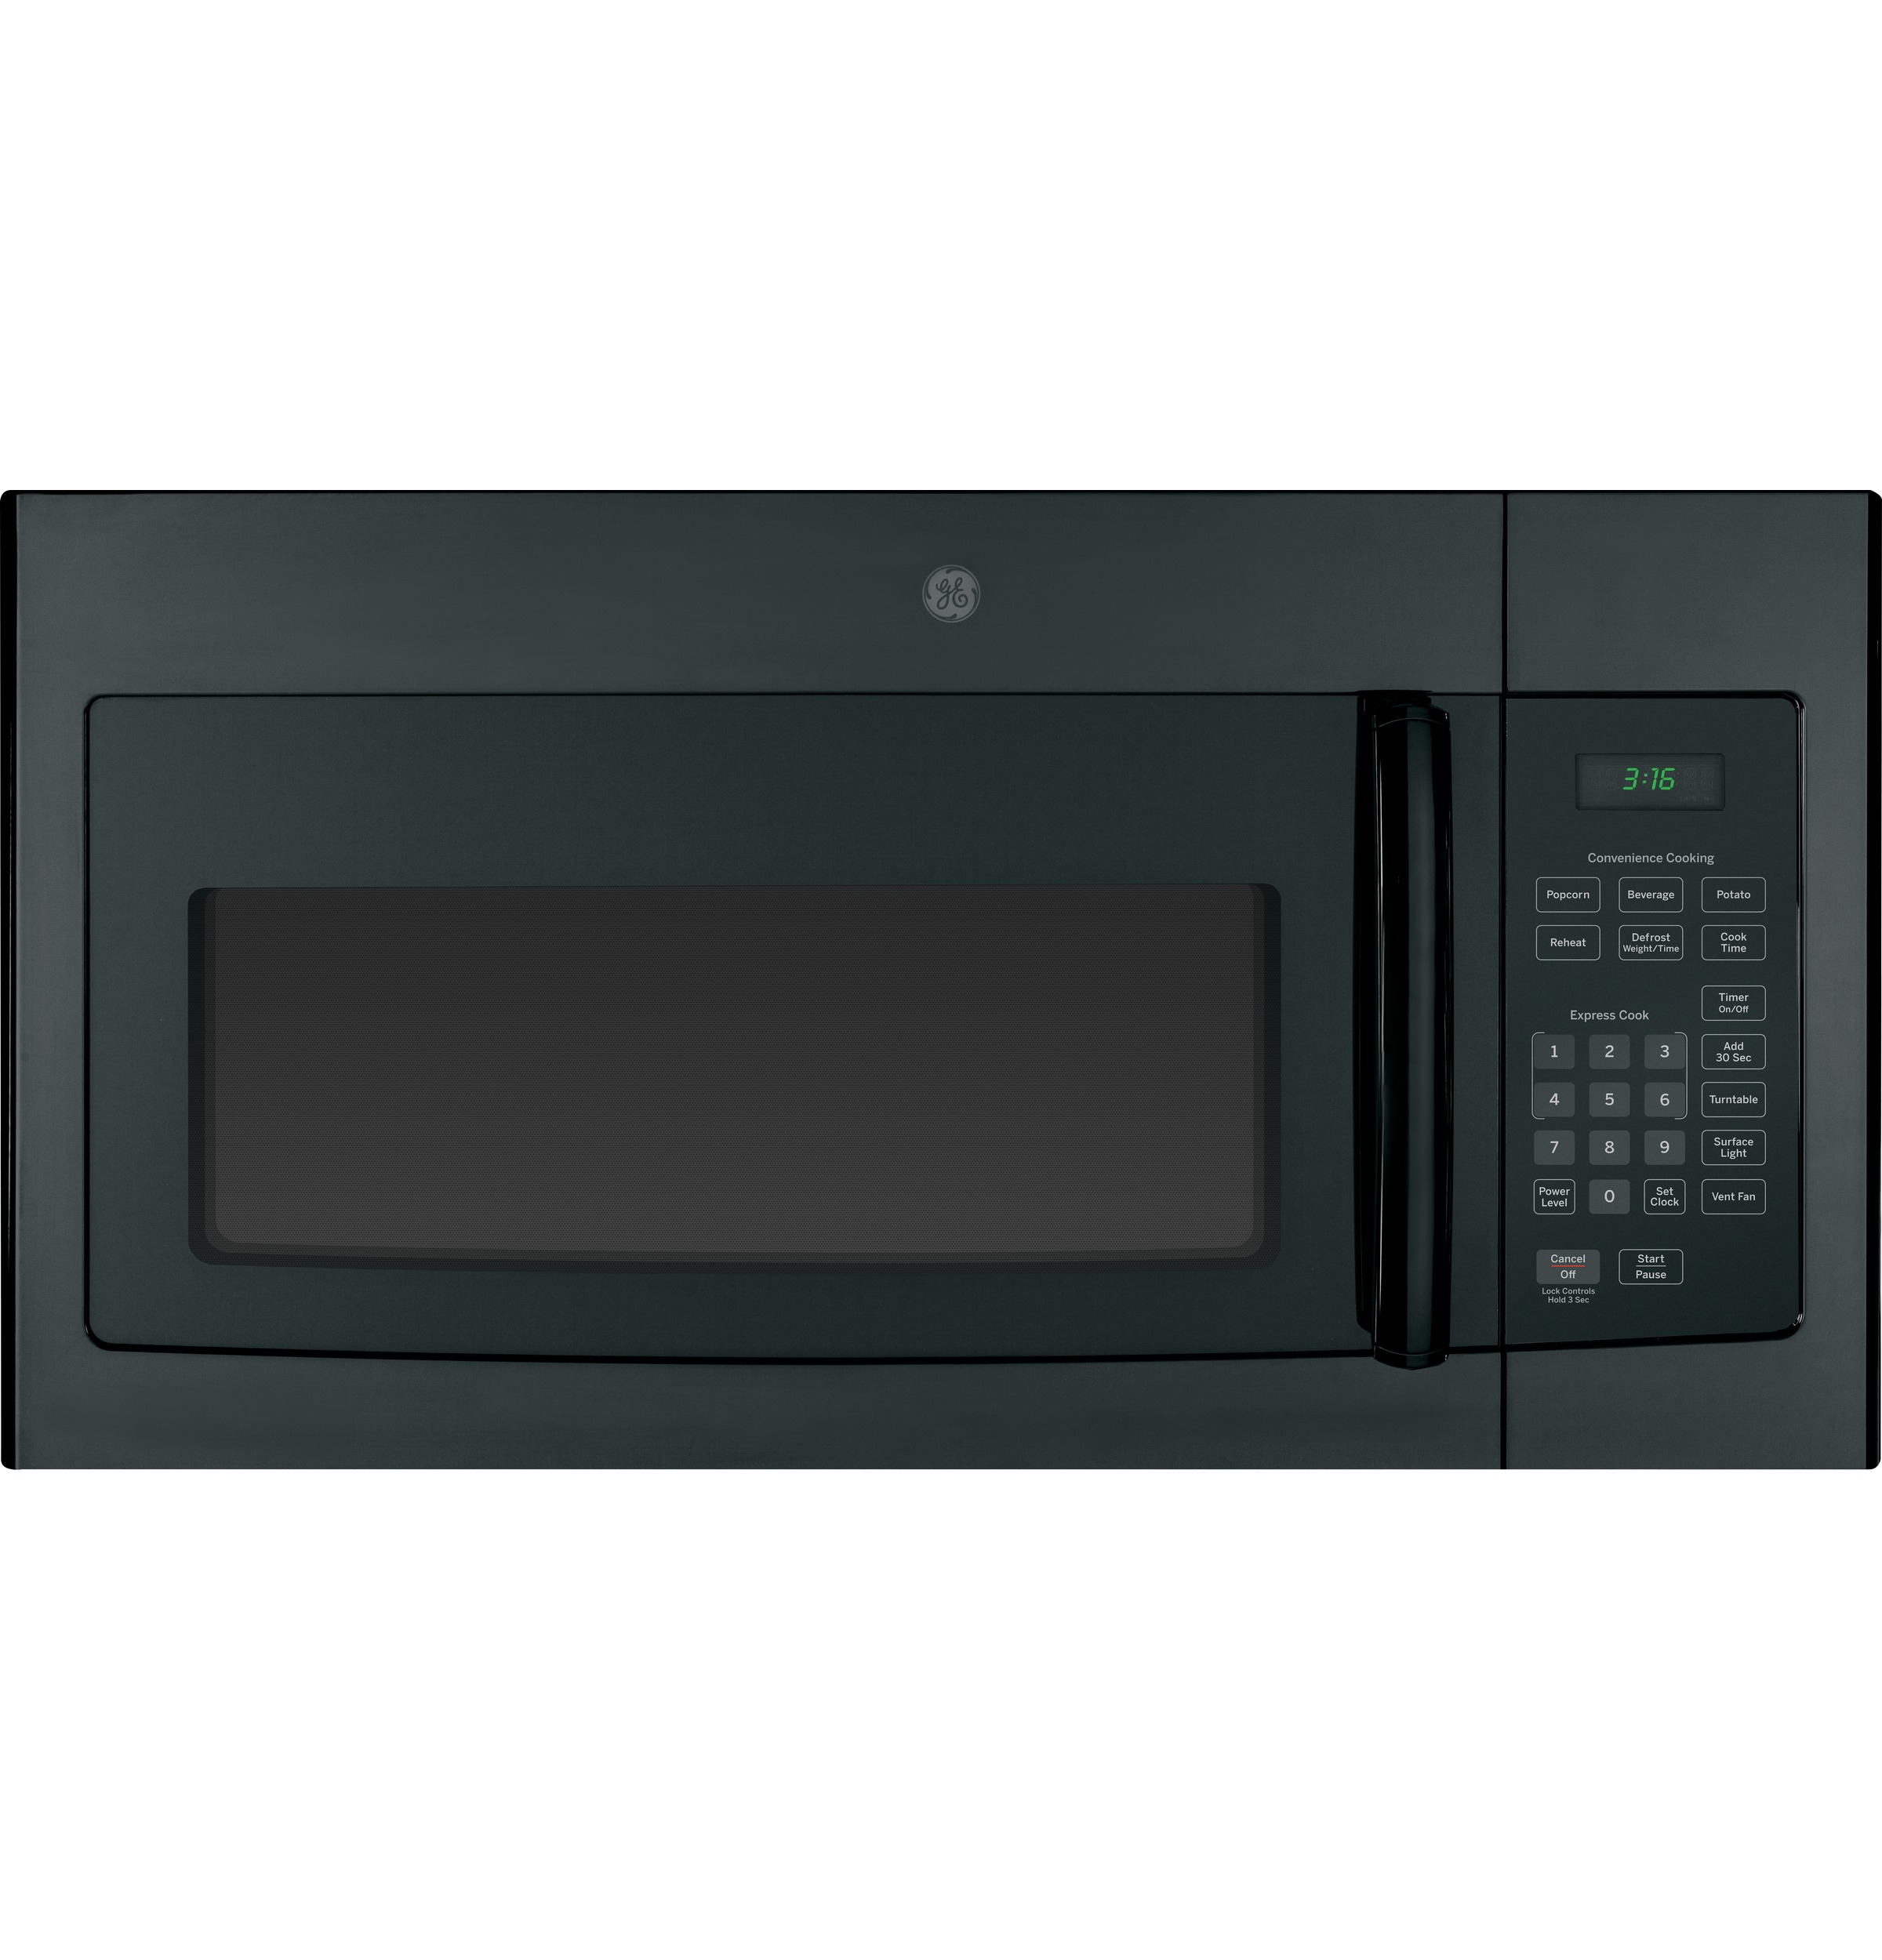 Ge 174 1 6 Cu Ft Over The Range Microwave Oven